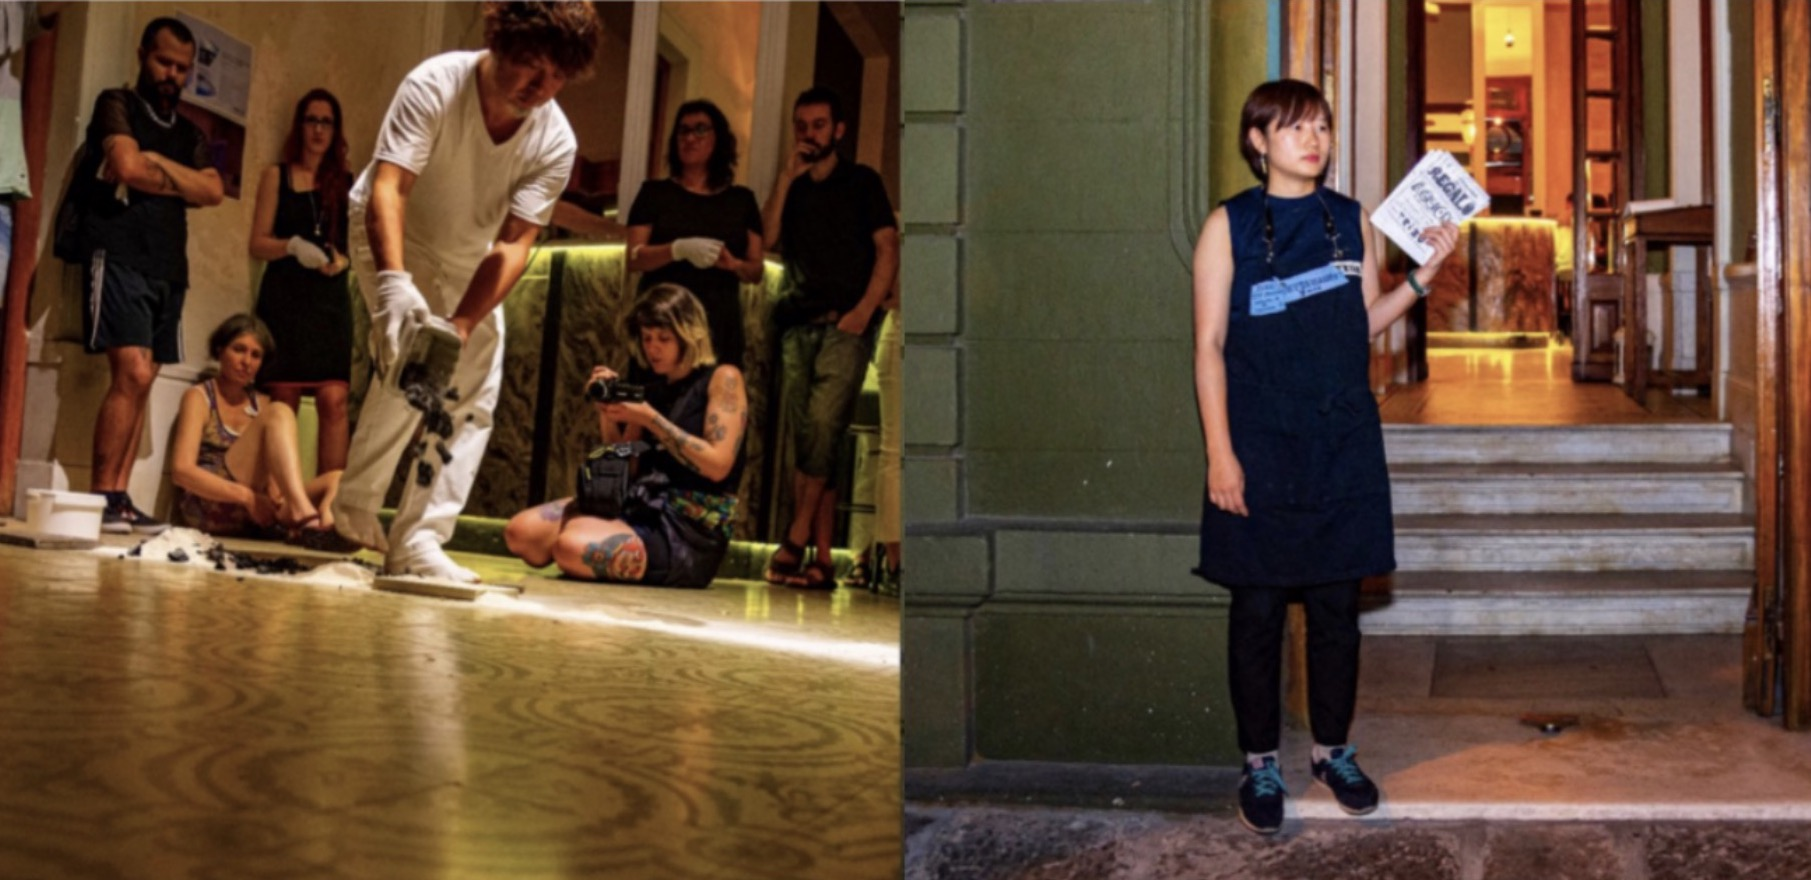 ipamia event 9 : 南米のパフォーマンスアートの活動報告 Presentation : Performance Art in South America